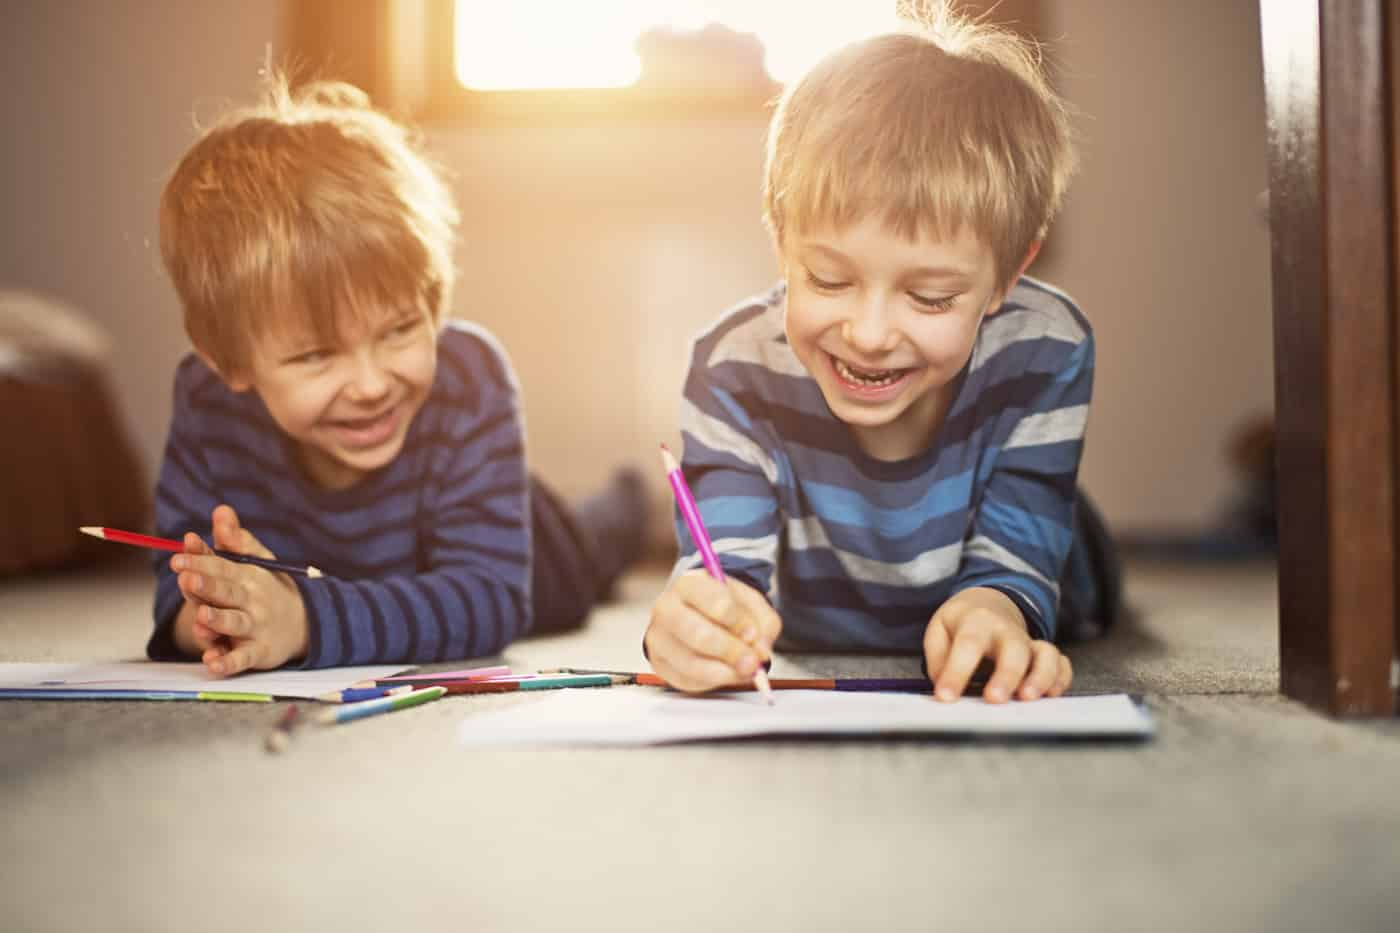 Little-brothers-enjoying-drawing-together-000060545454_Medium